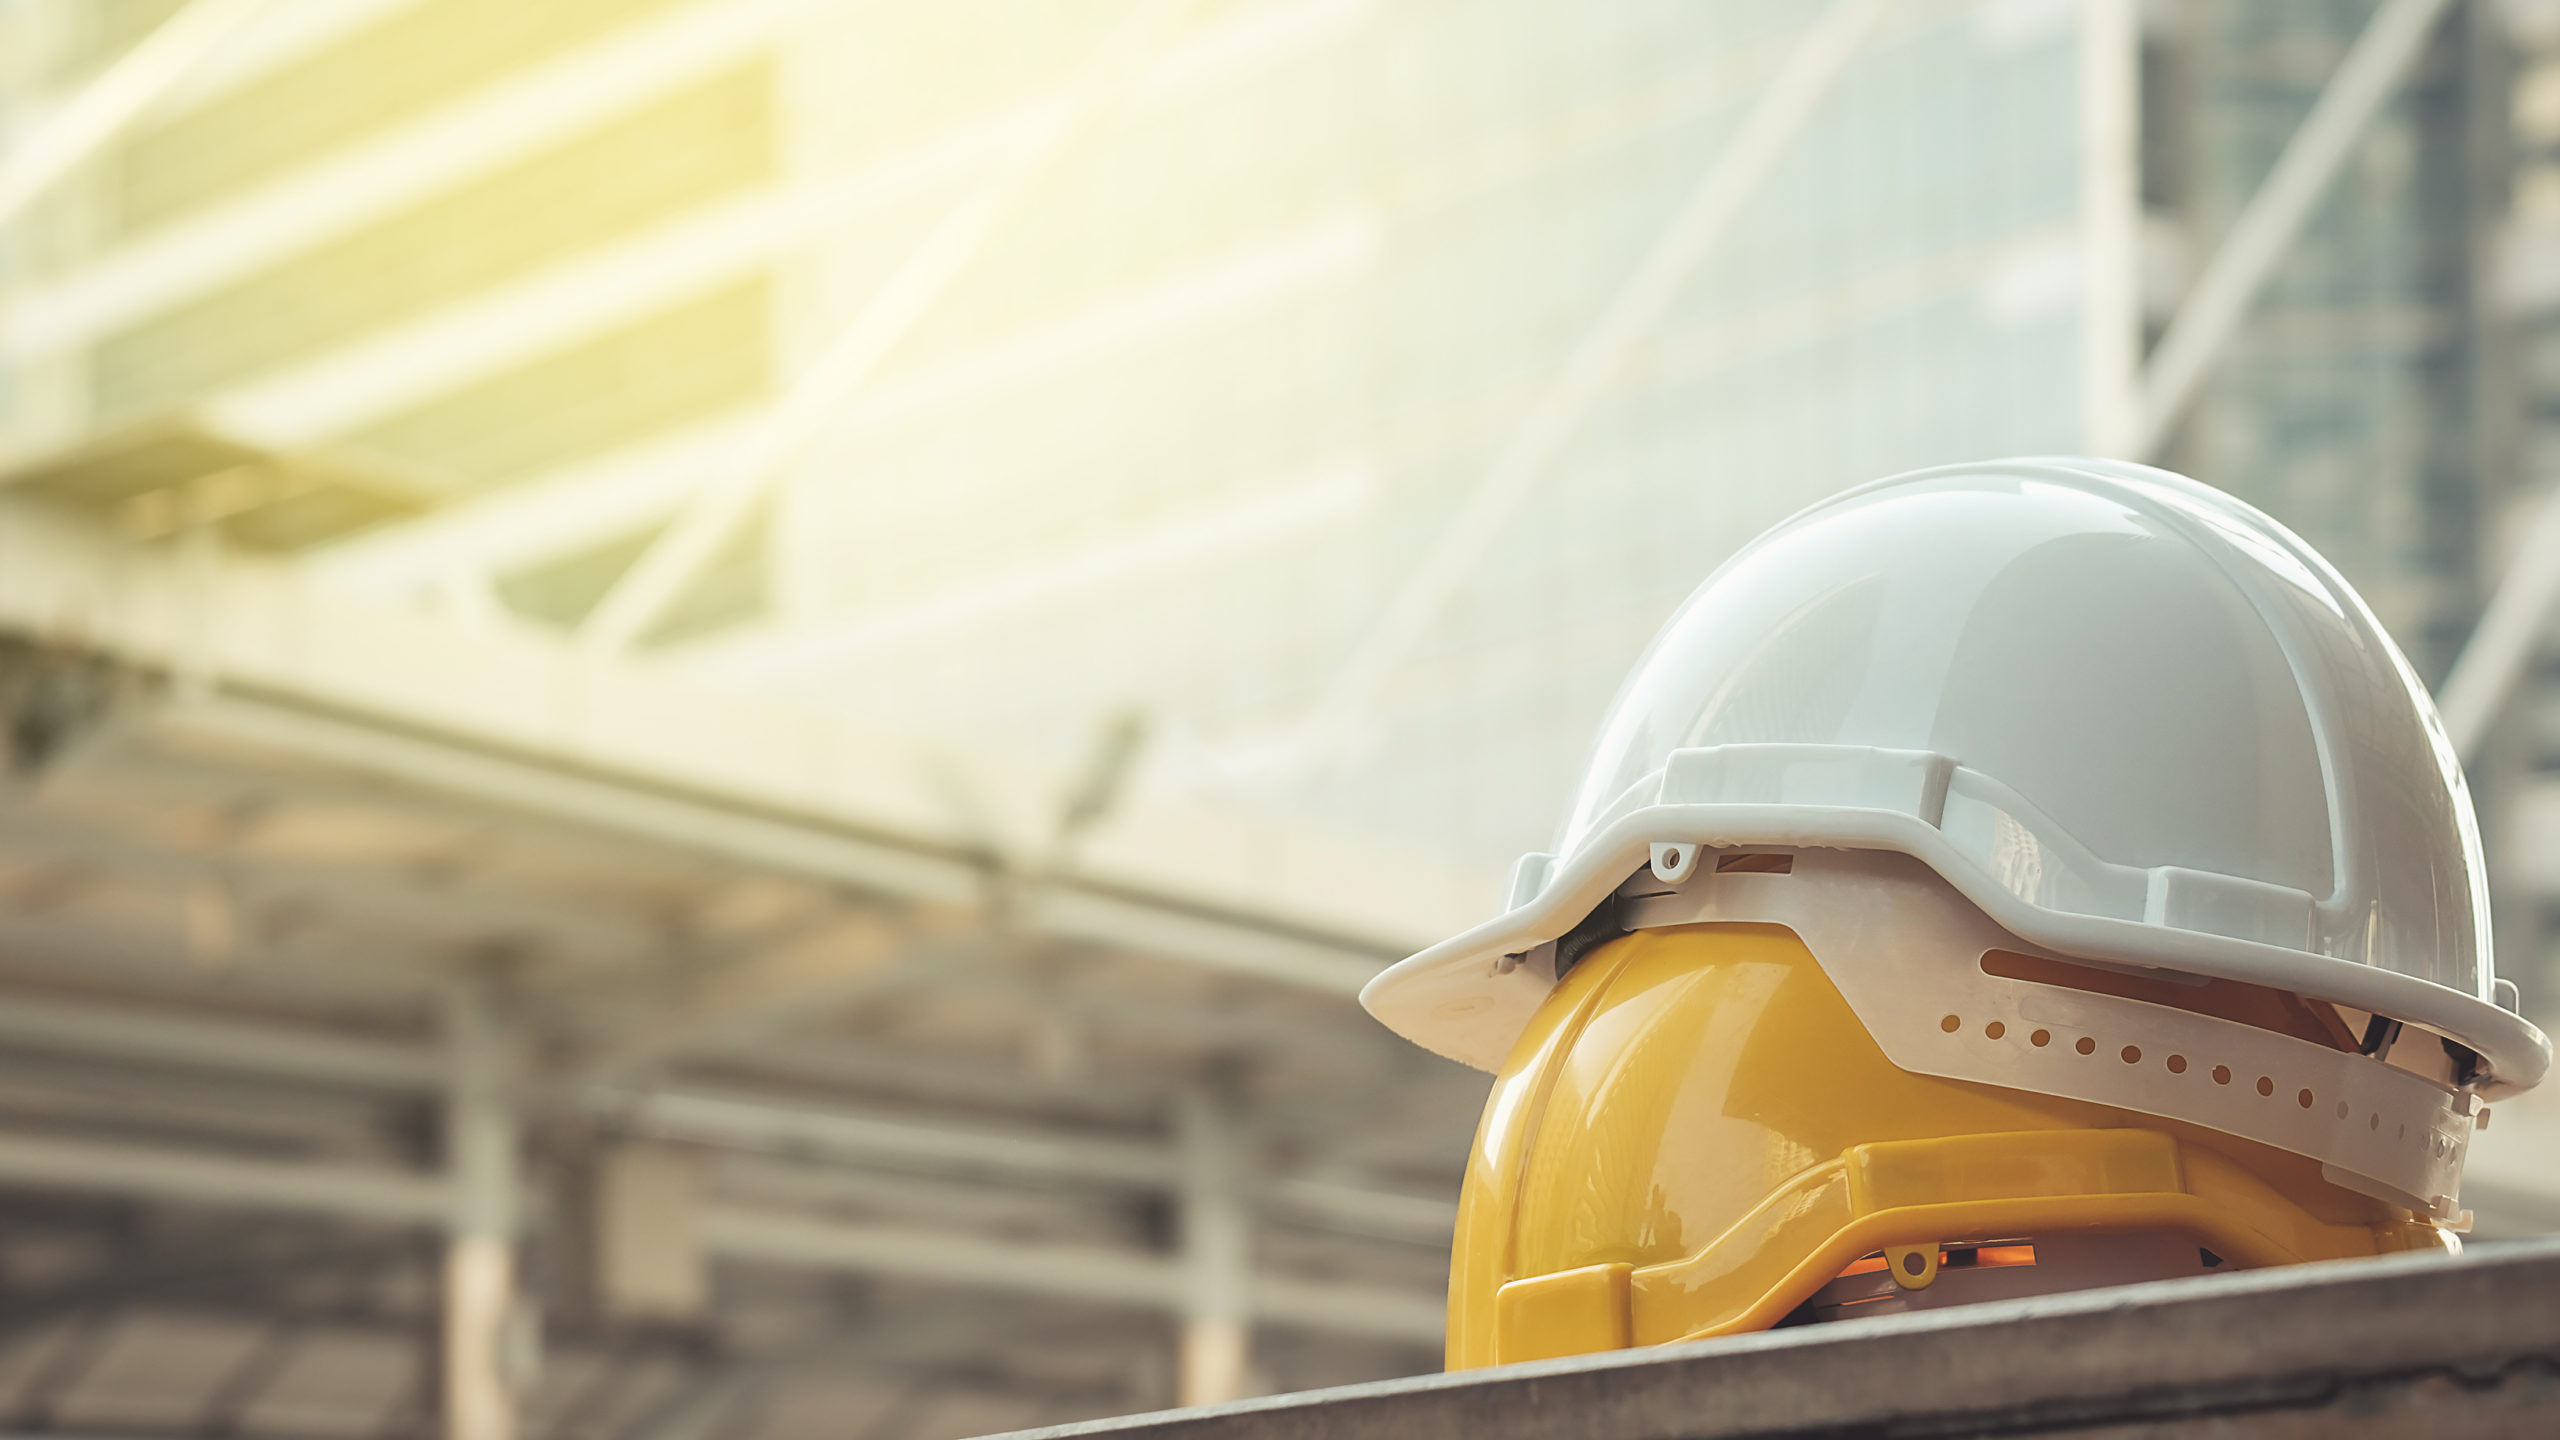 """Has your hard hat expired? Safety experts urge workers to """"check your head protection"""""""